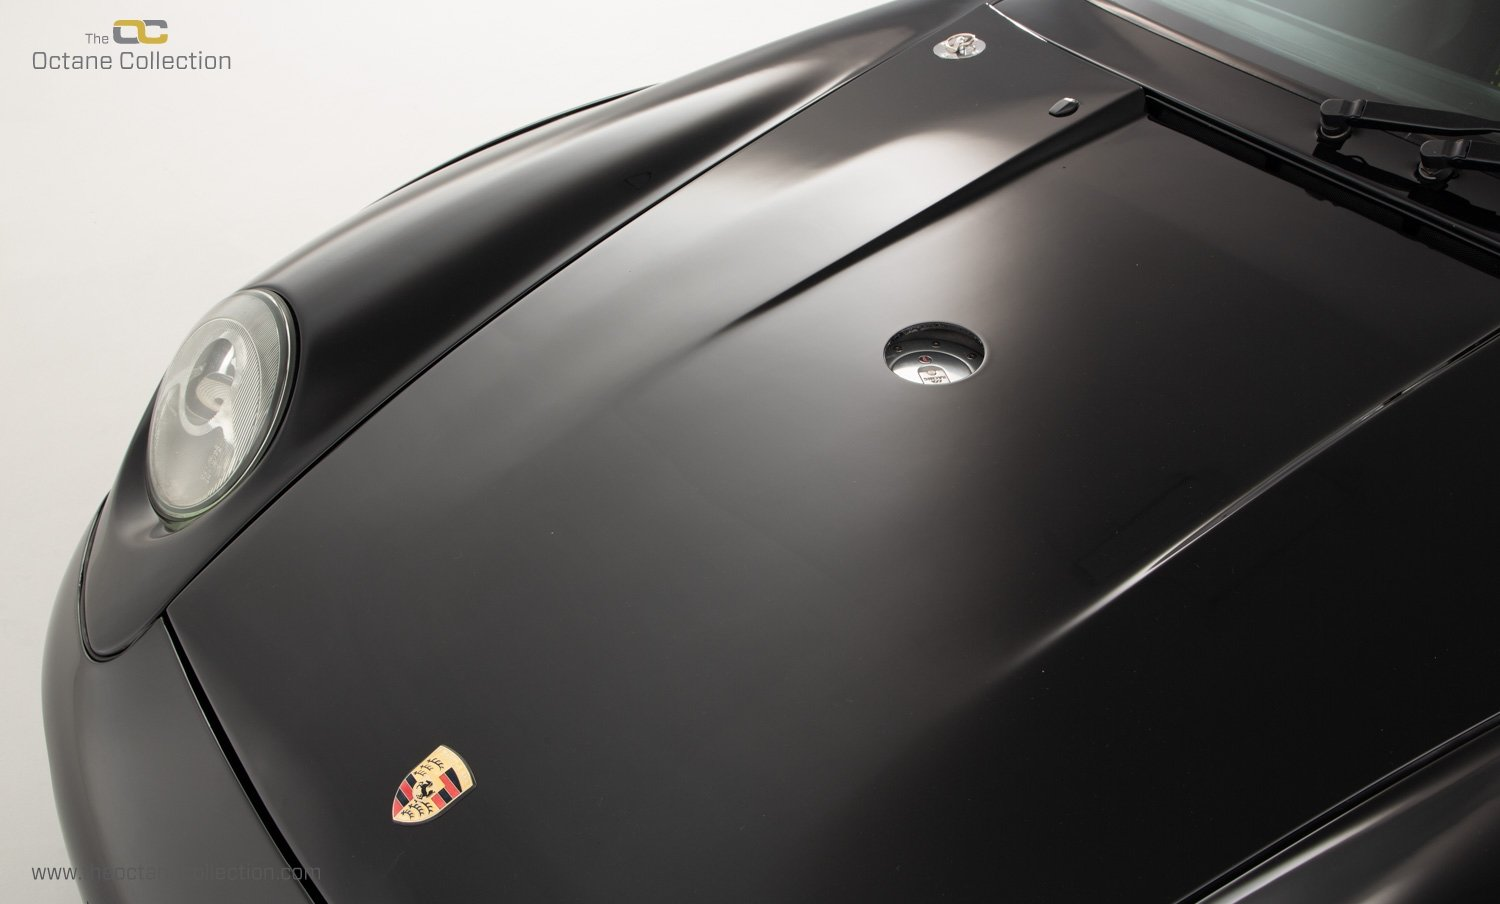 1995 PORSCHE 911 (993) RS 'BLACK SNAKE' For Sale (picture 3 of 23)